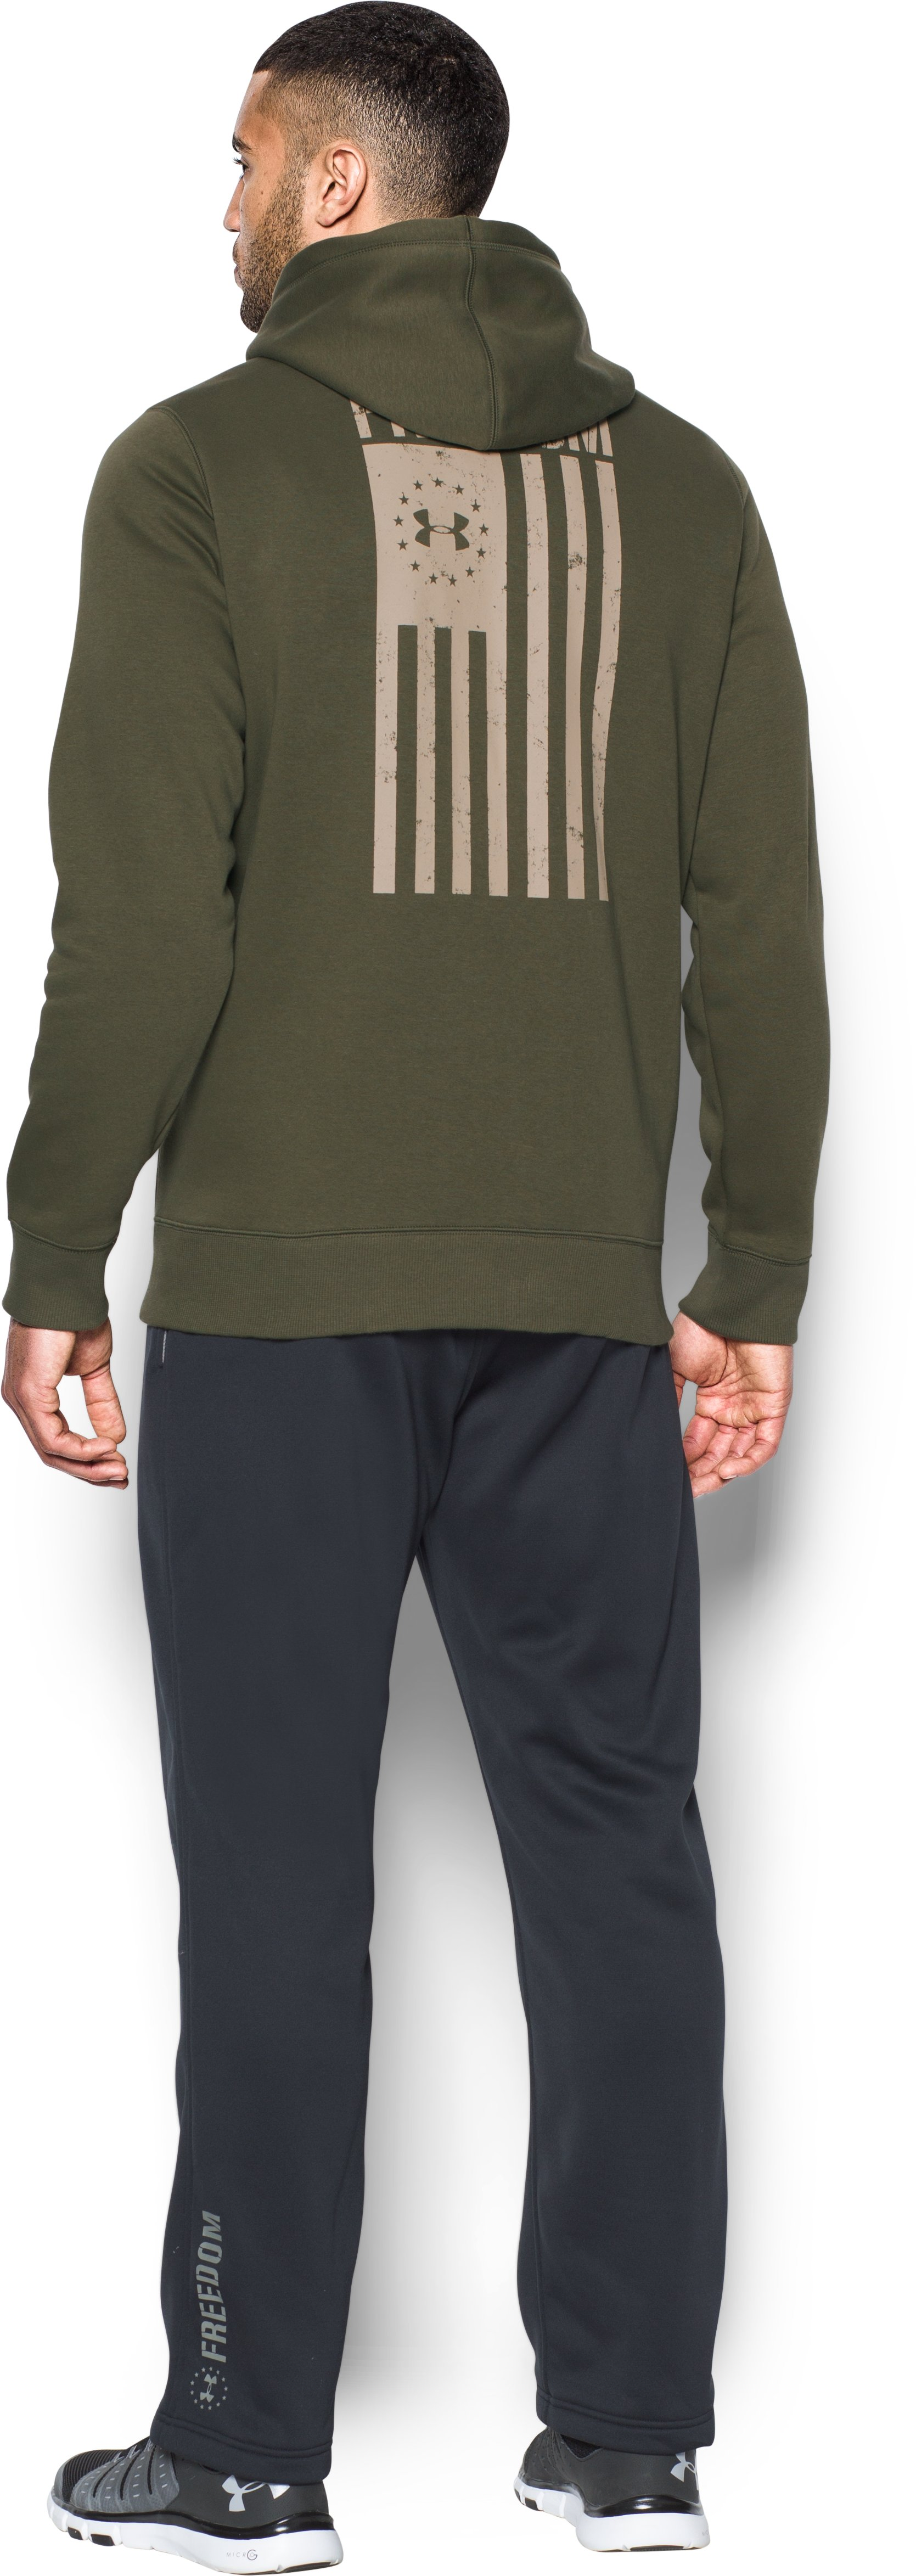 Men's UA Freedom Flag Hoodie, Marine OD Green